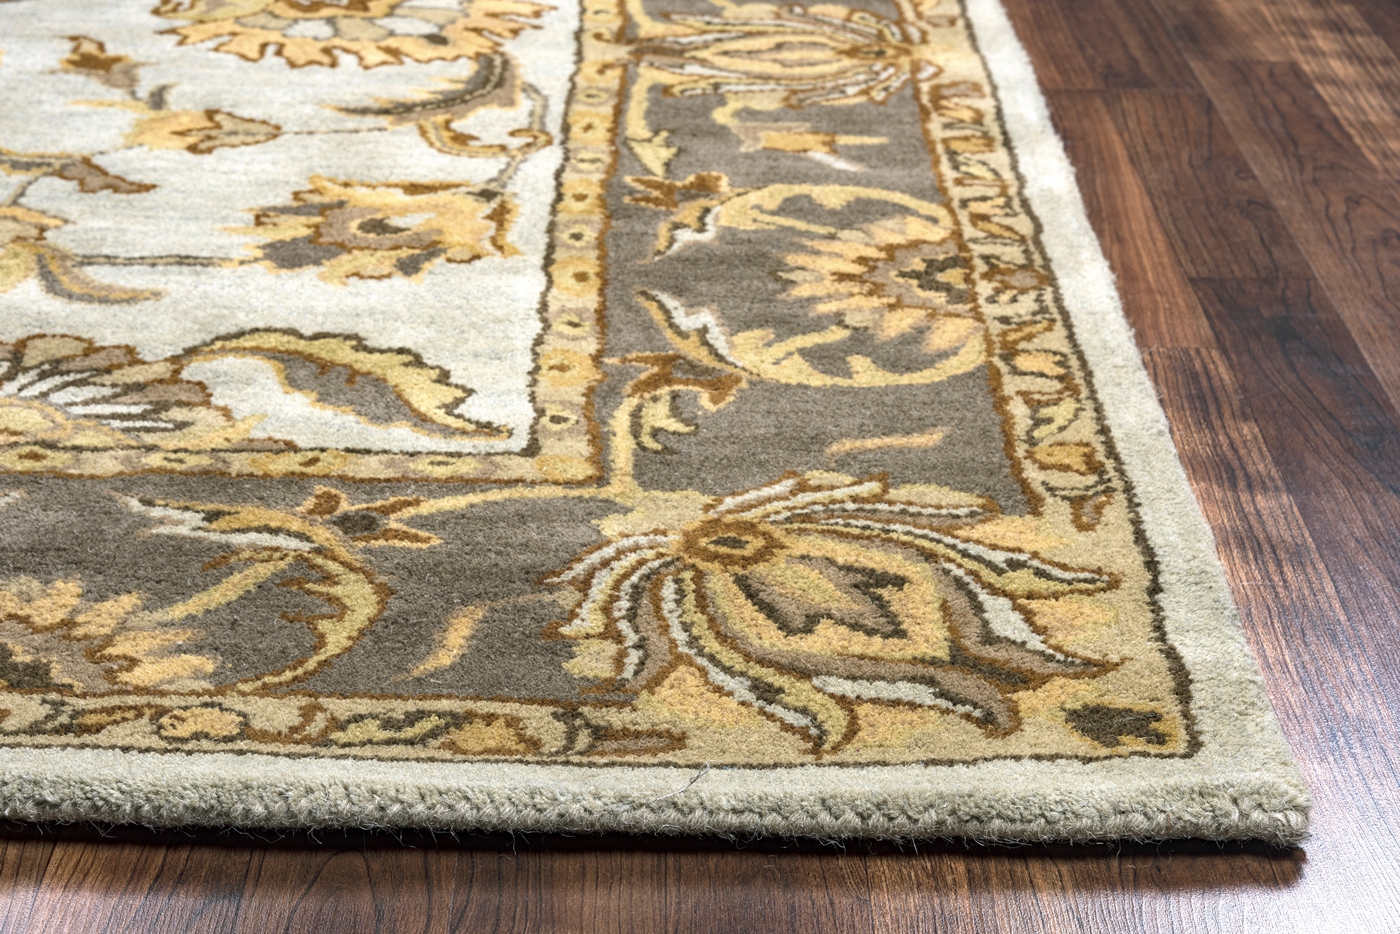 Grey Tan And Brown Area Rug: Valintino Bordered Flowers Wool Area Rug In Dark Taupe